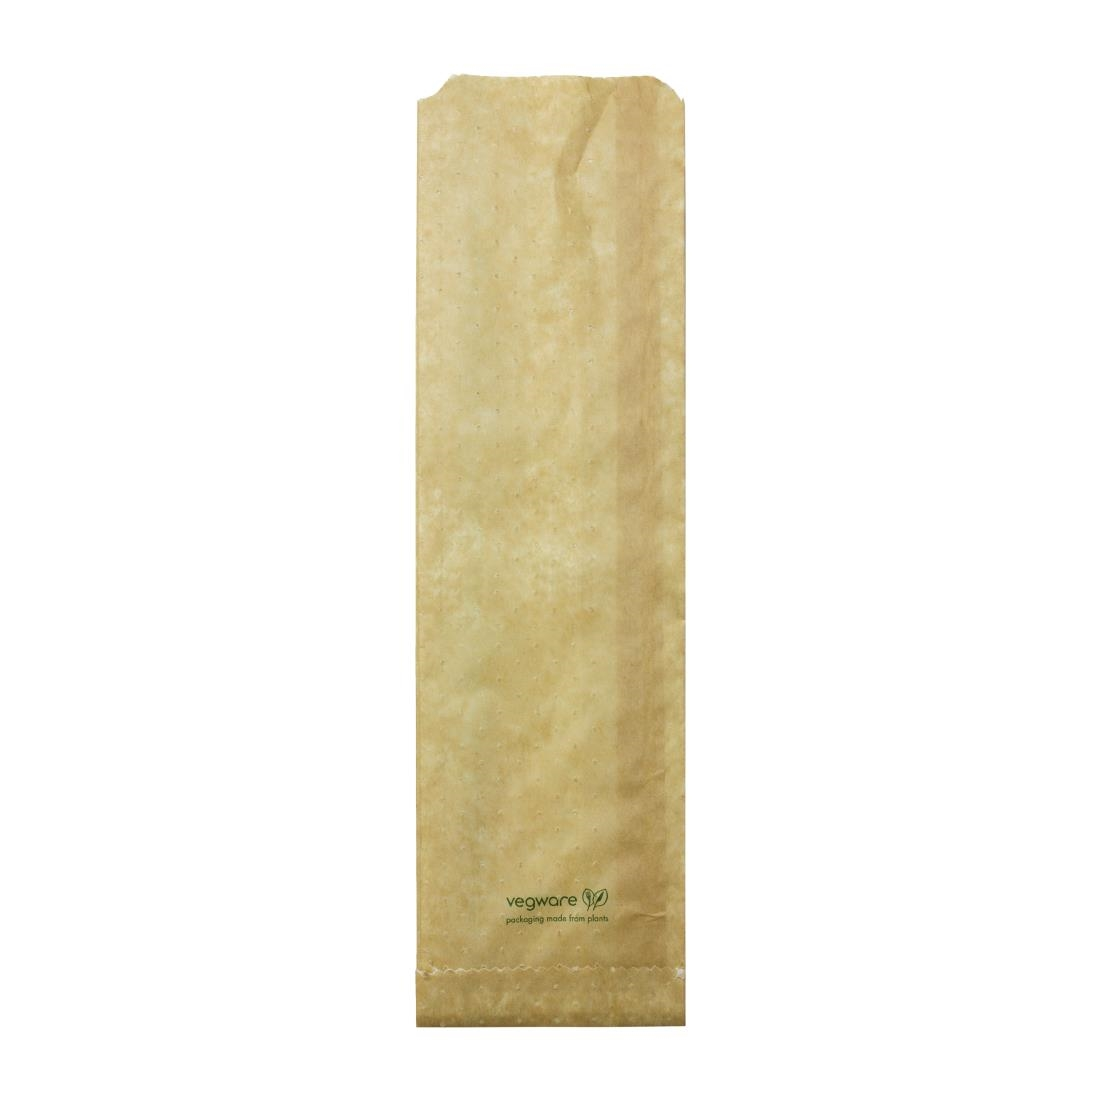 Image of Vegware Compostable Therma Paper Hot Food Bags 356 x 101mm (Pack of 500) Pack of 500